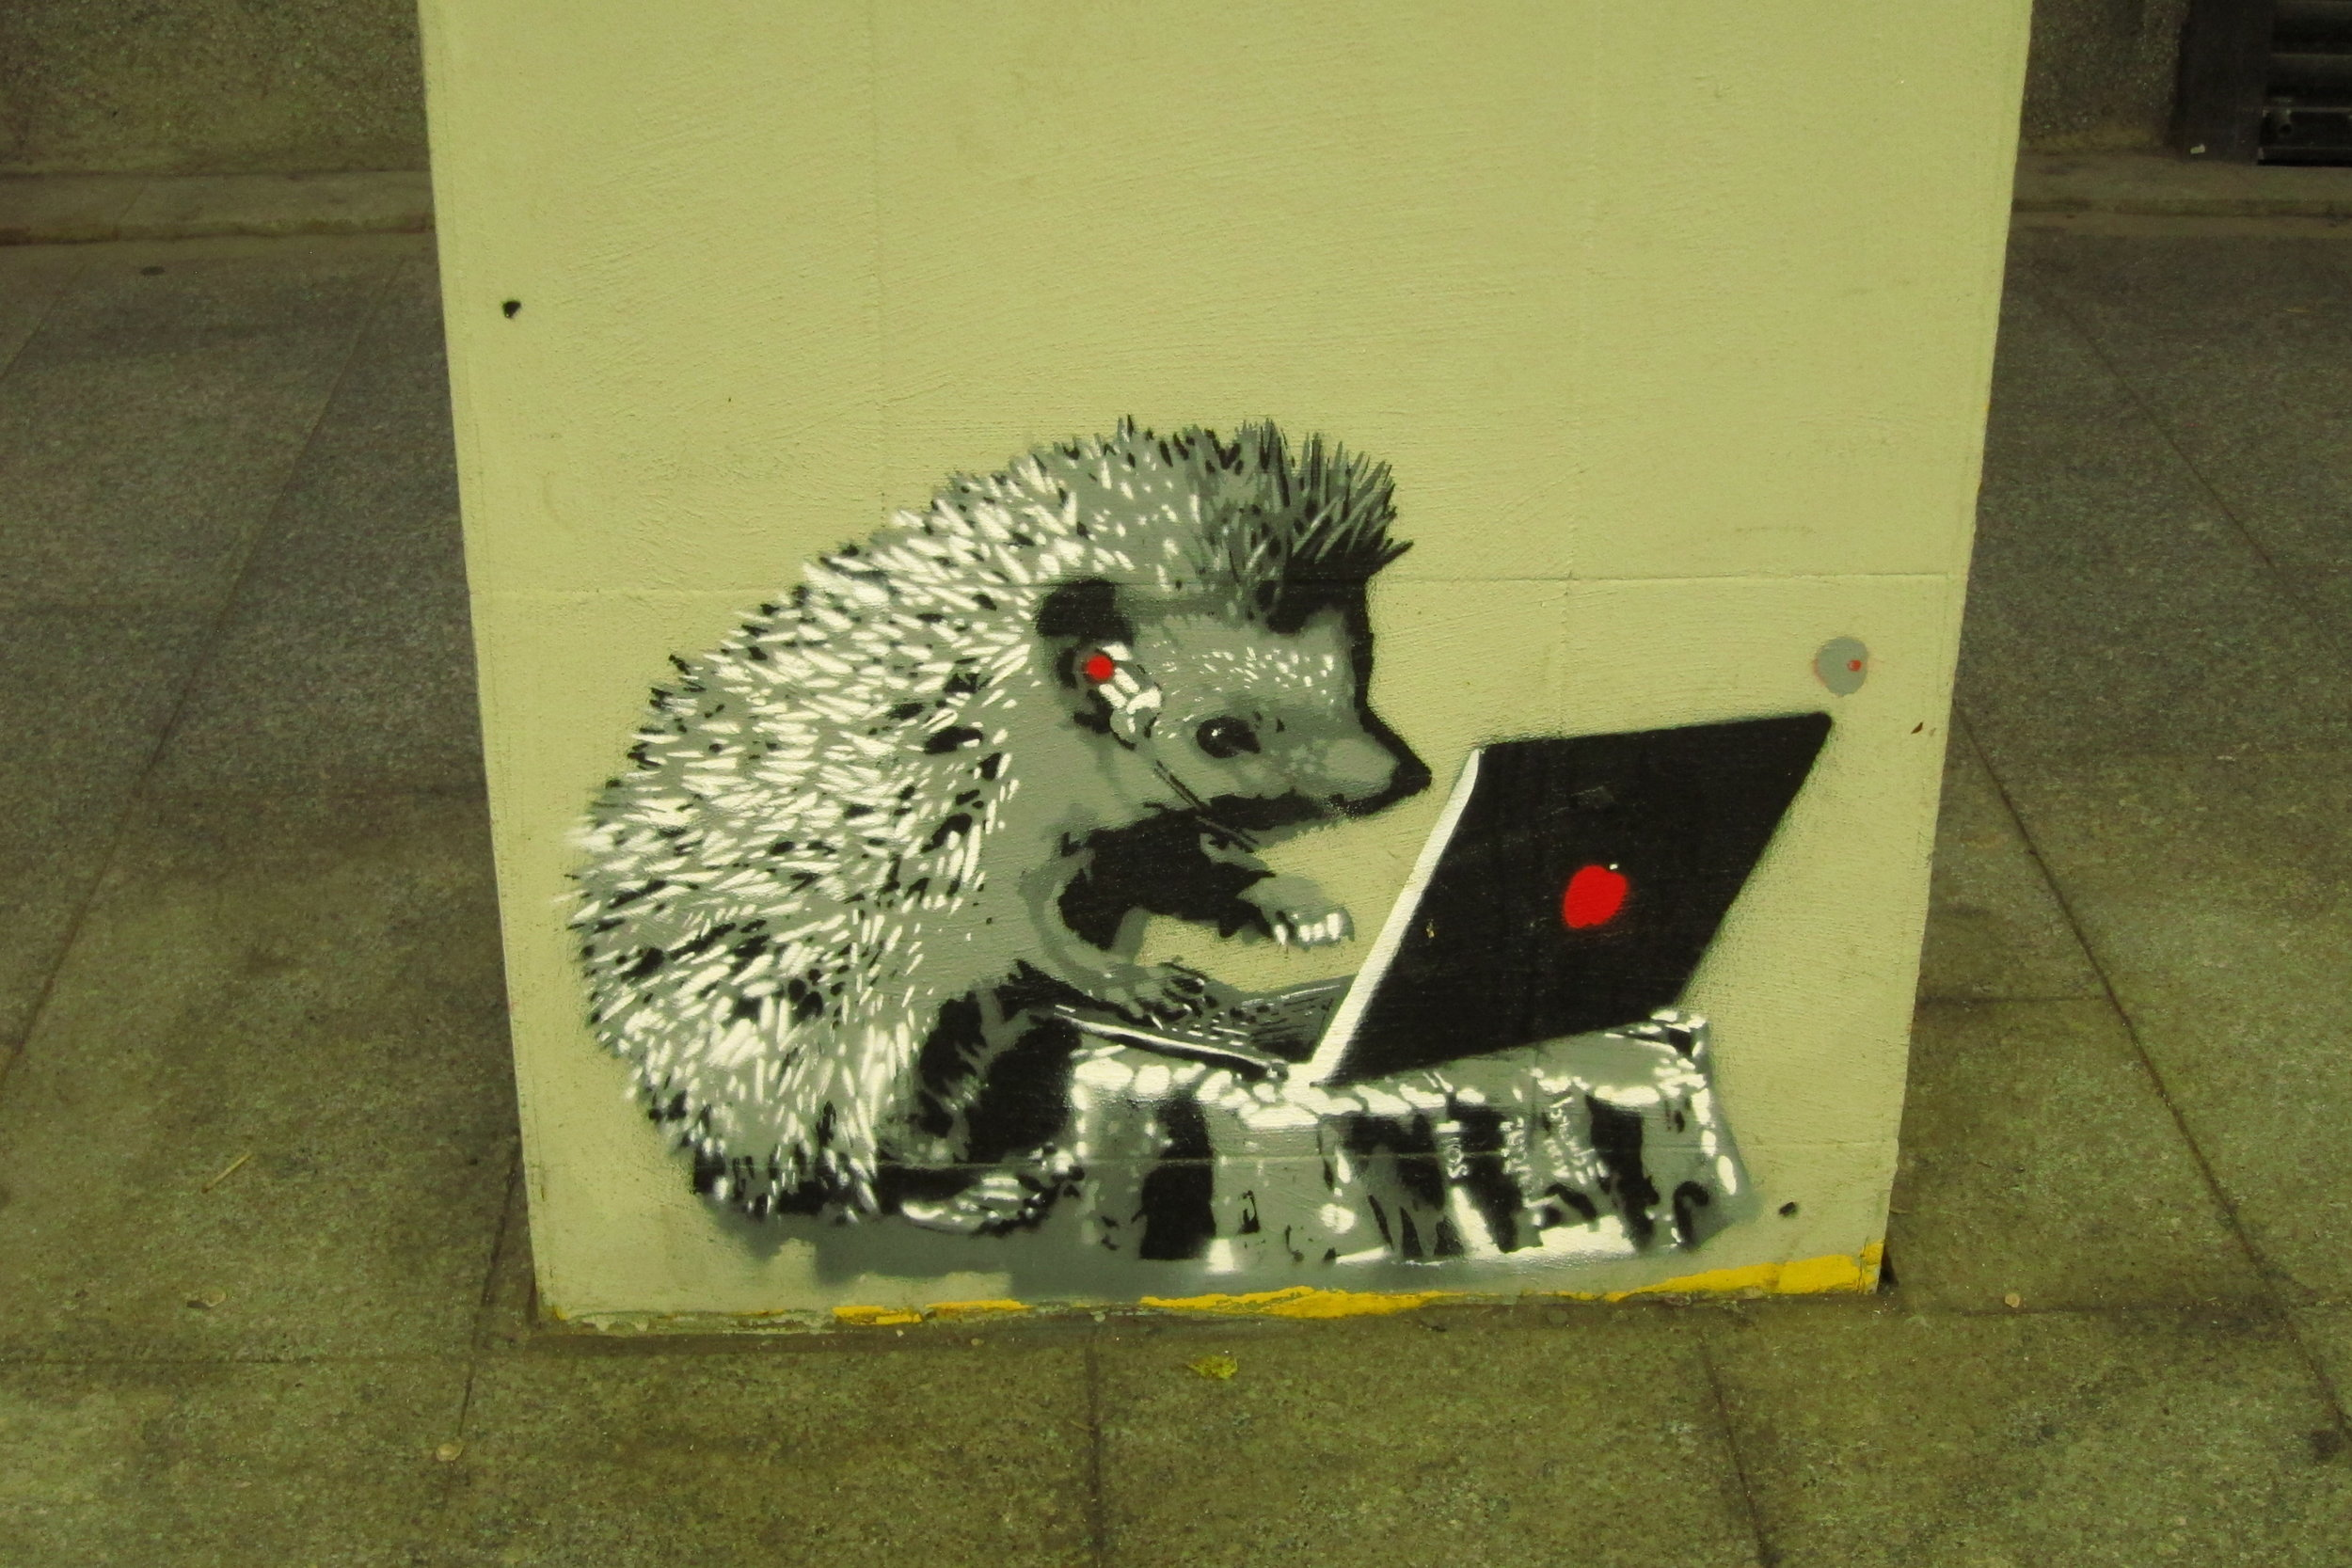 Hedgehog at work, Riga, Latvia, 5/29/2019